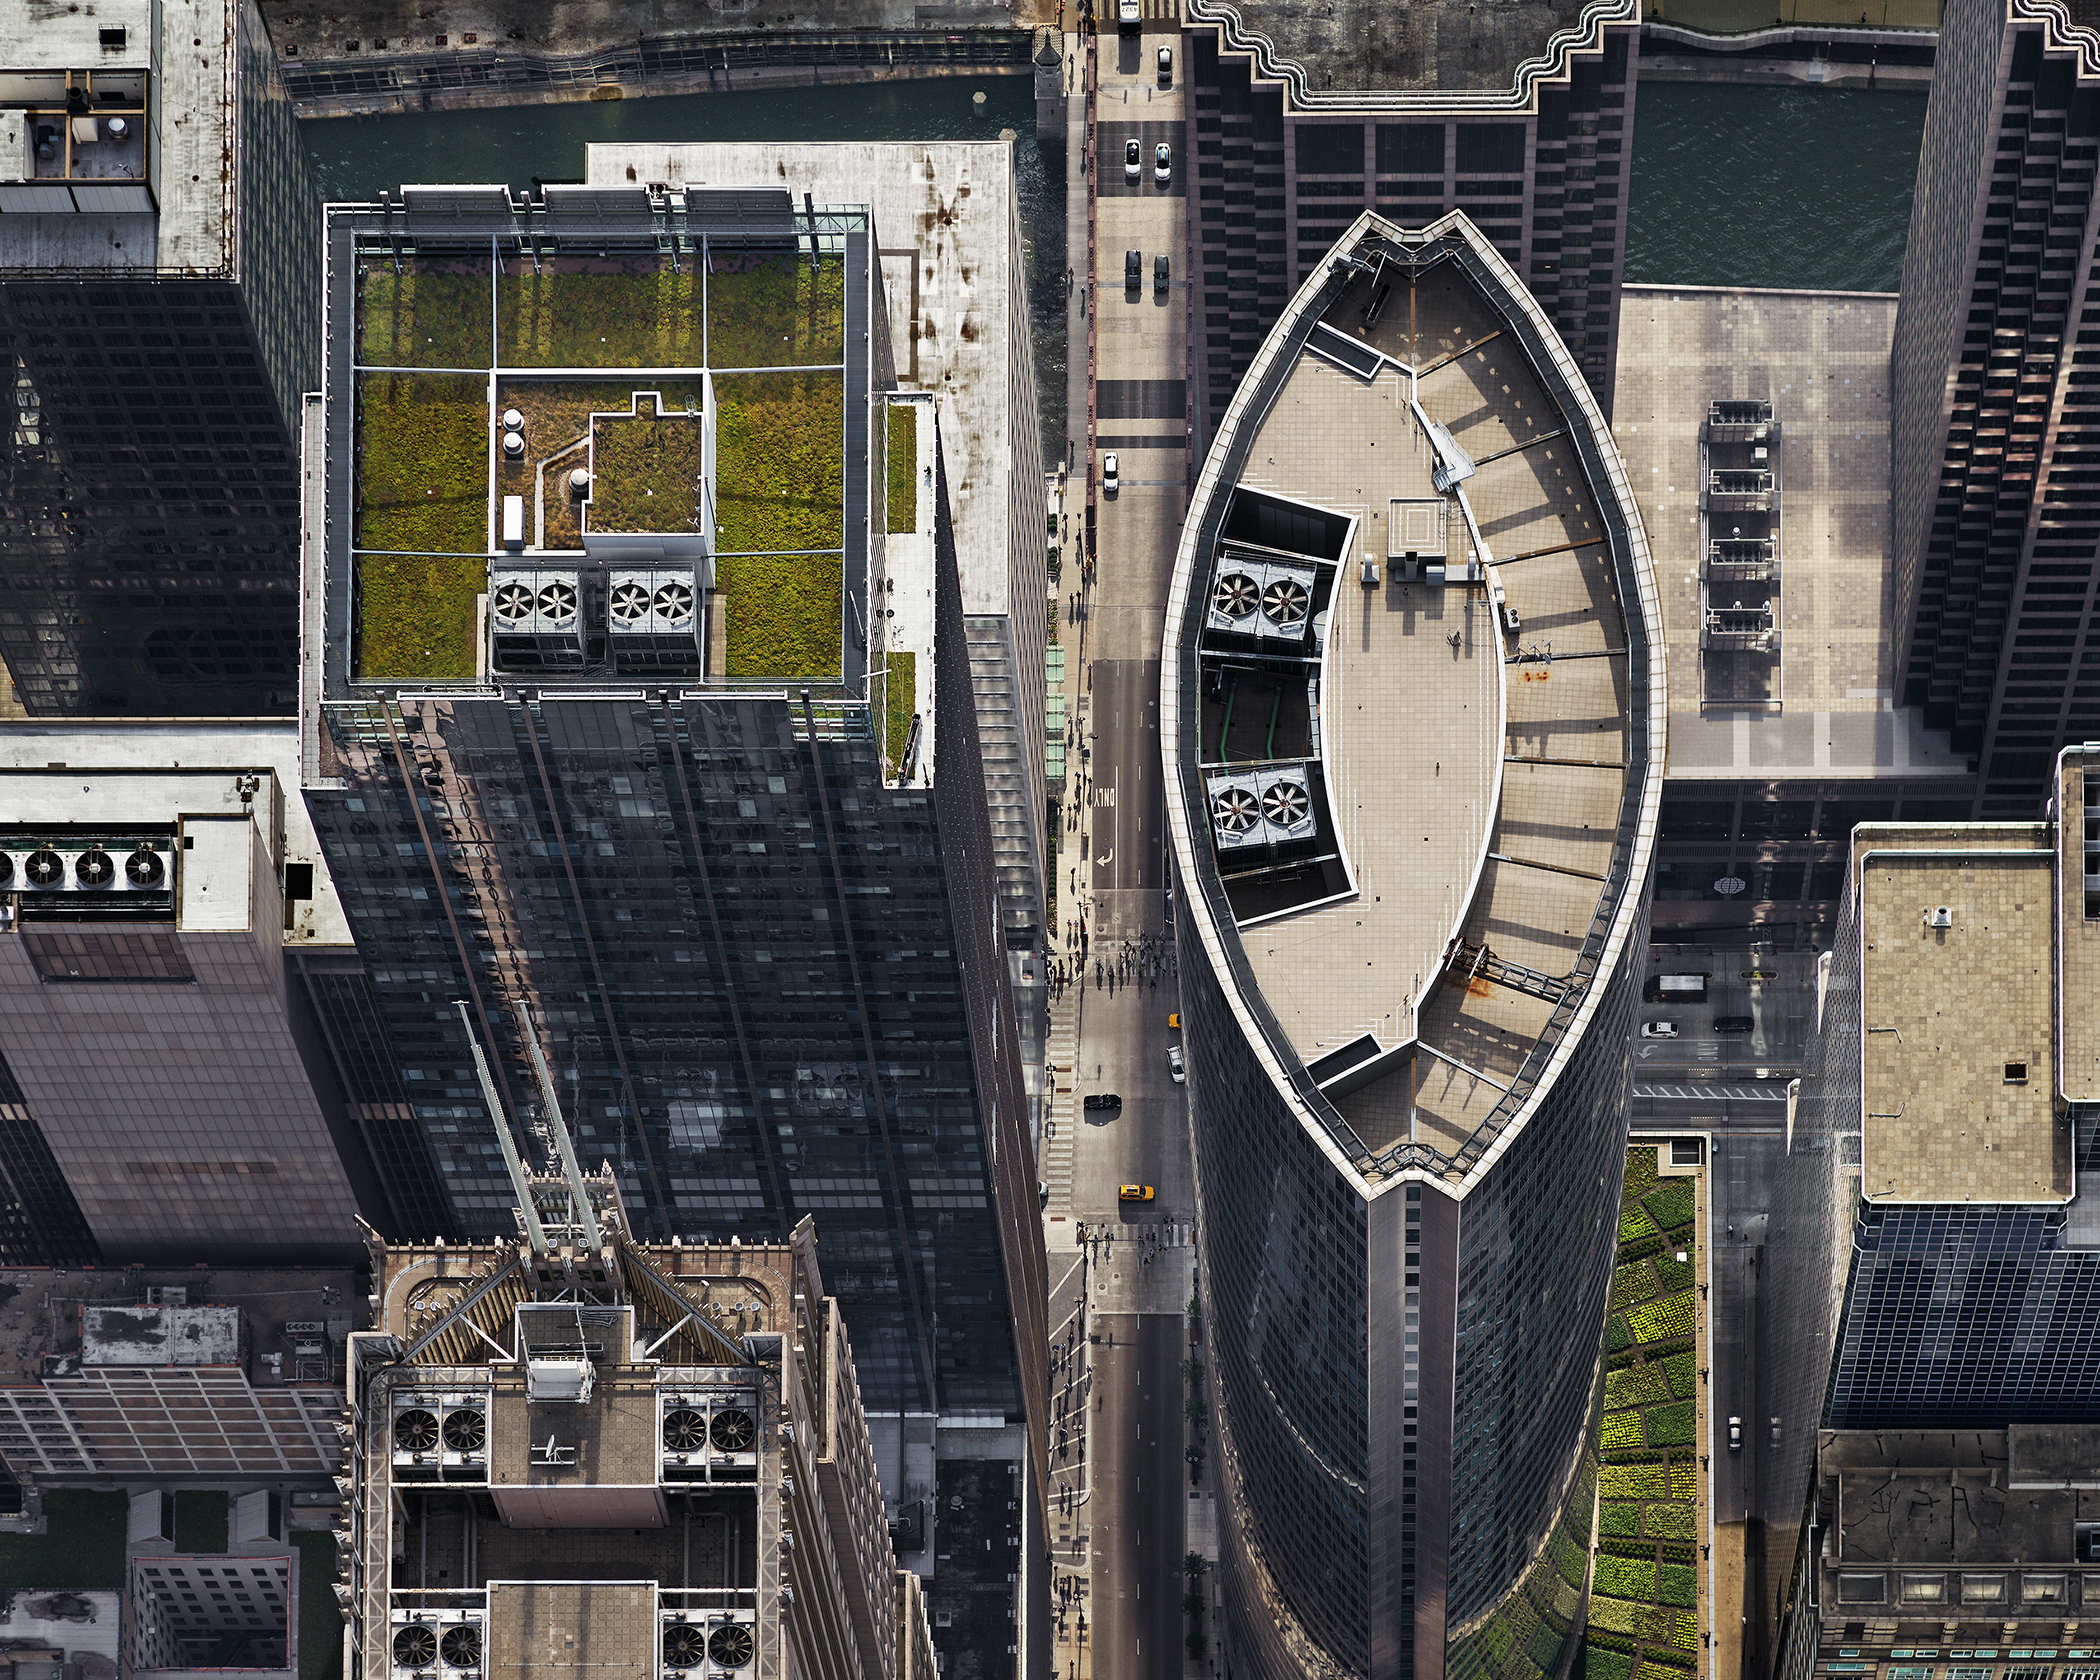 111 South Wacker Drive (from above, looking West). Chicago, IL, July 2013. From the series Rooftop.